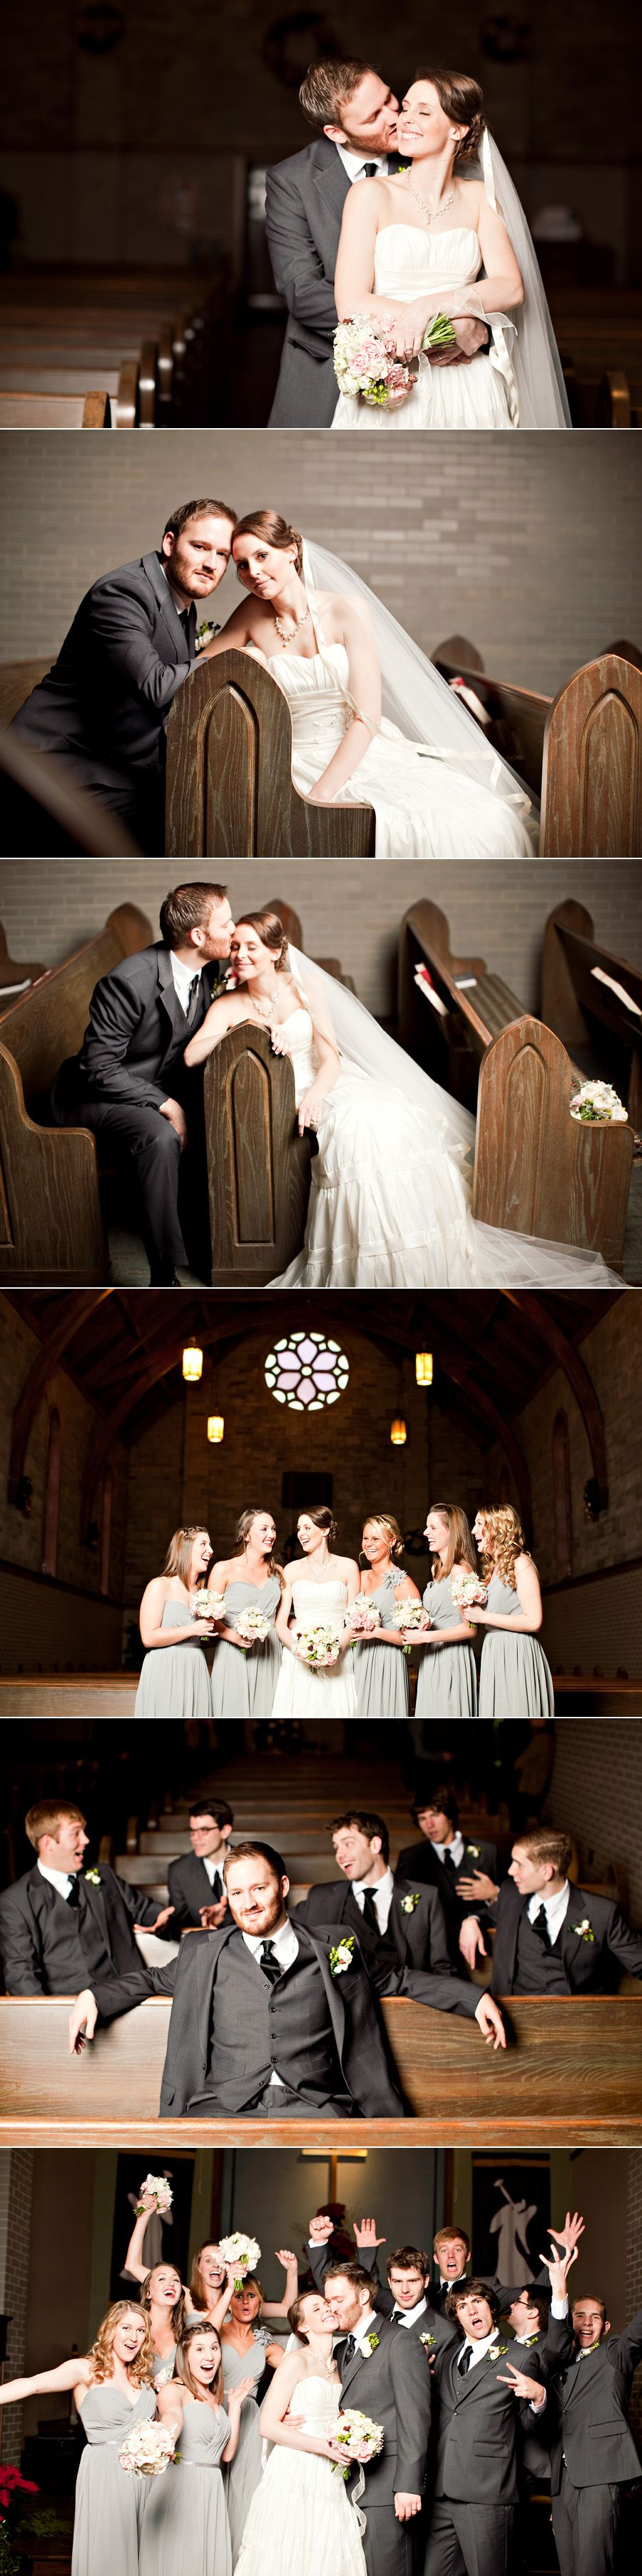 Perfect And Unique Wedding Shots For A Church Love This